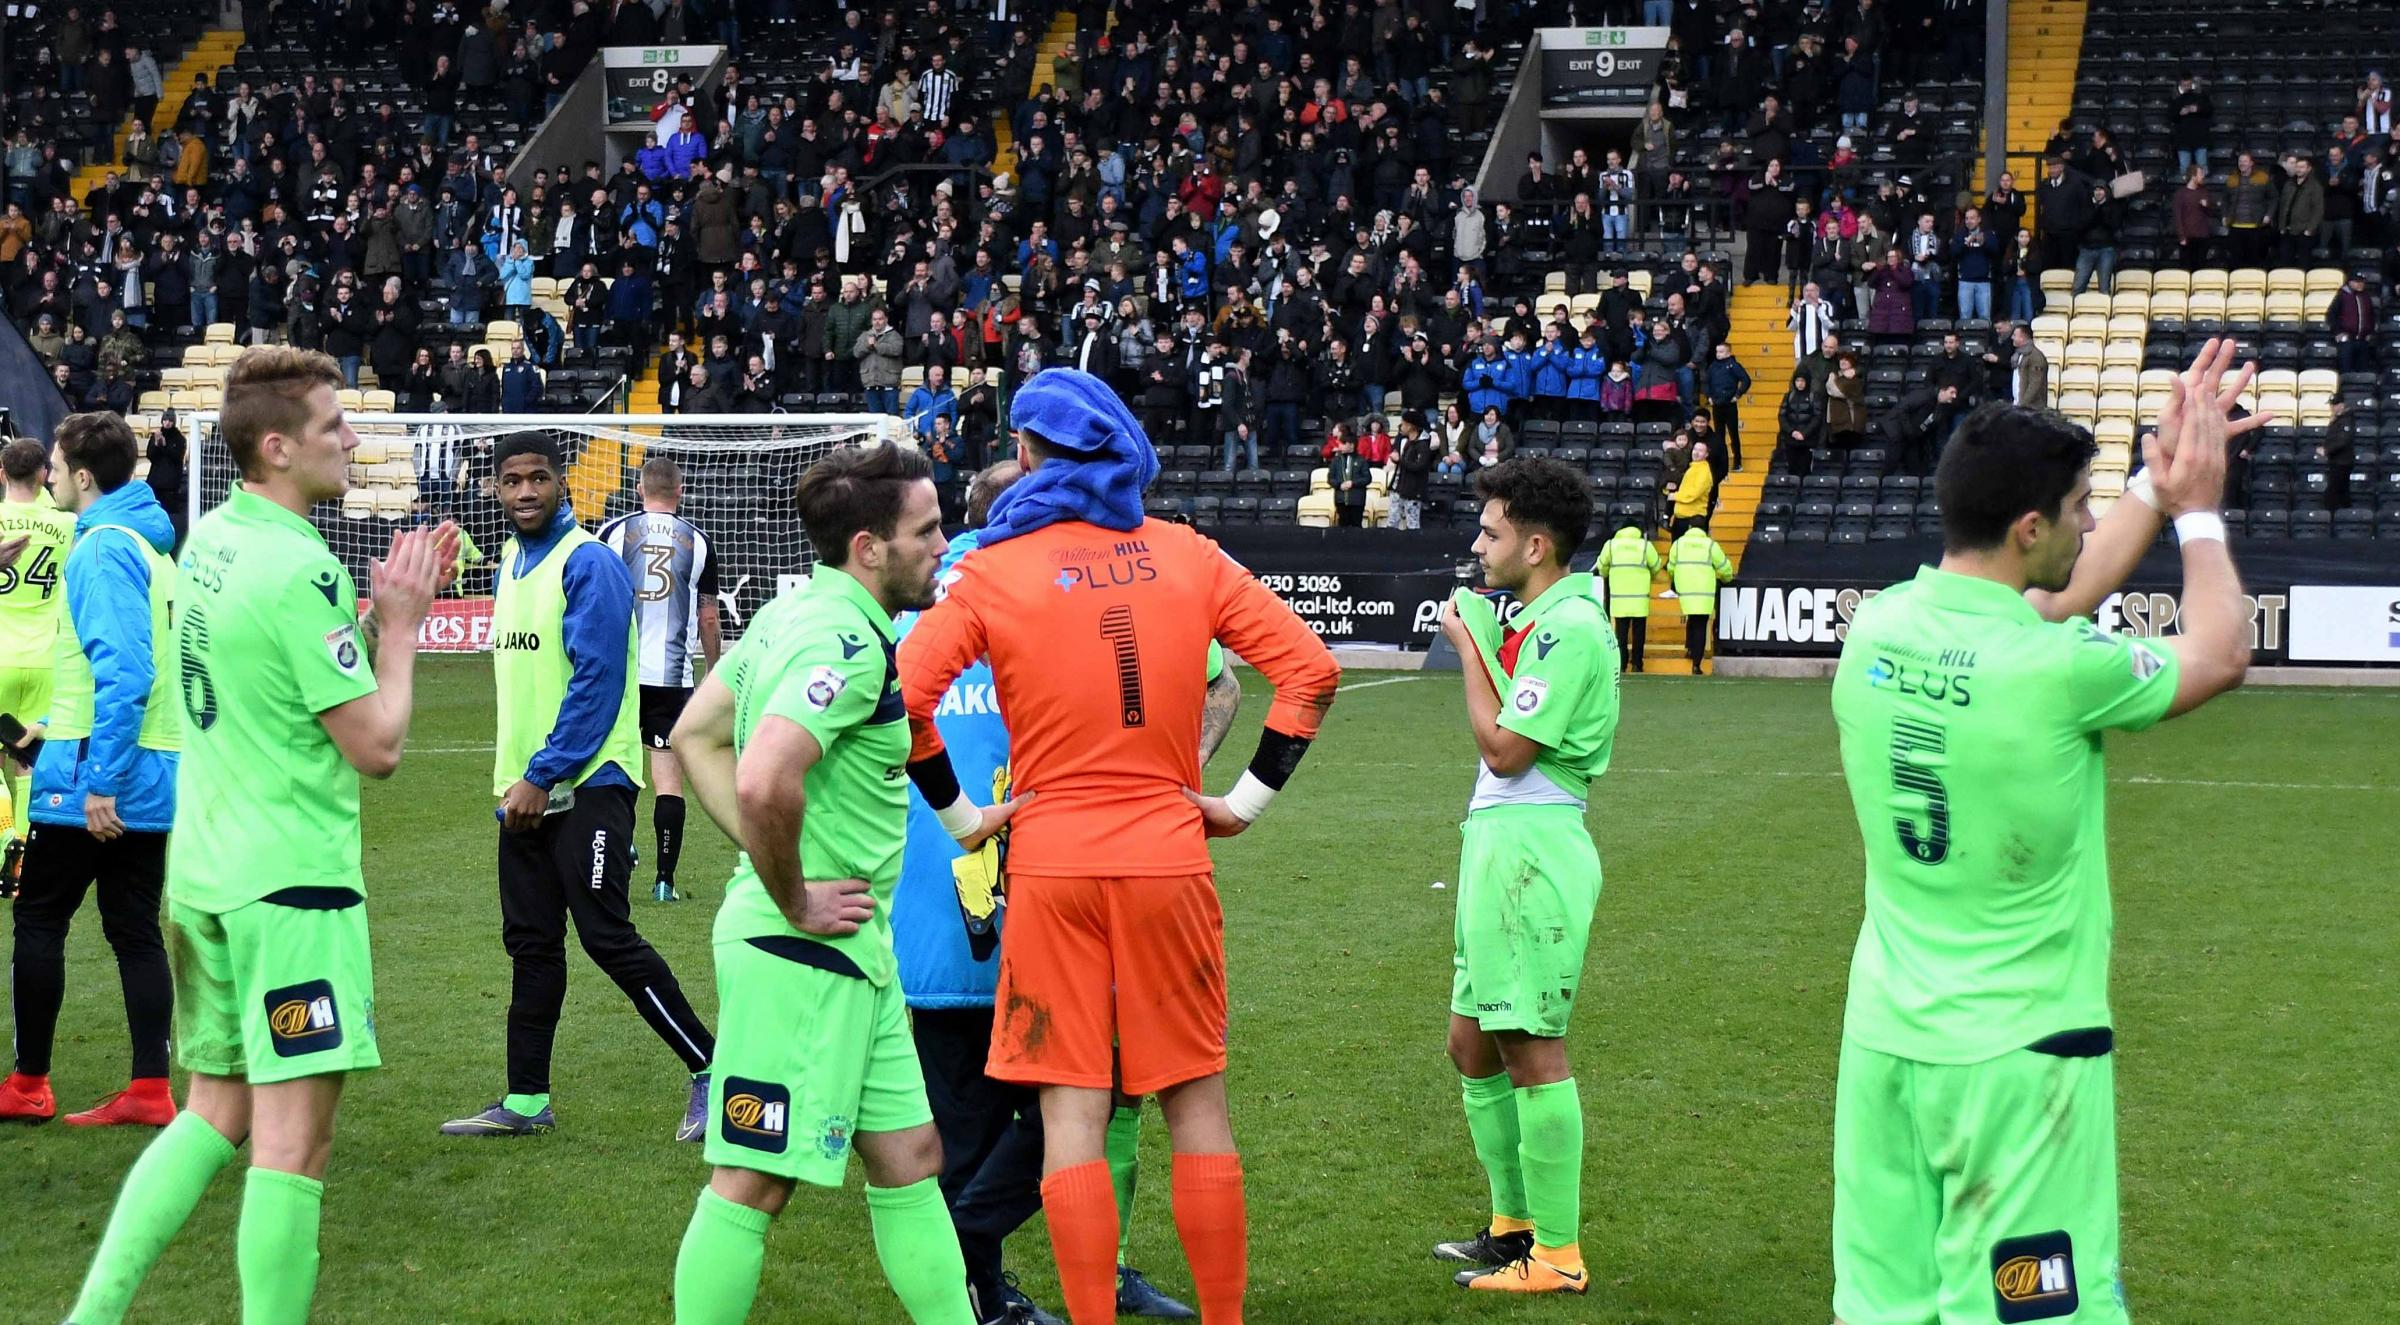 AGONY: Oxford City's players thank the fans at the end of the gamePicture: Mike Allen